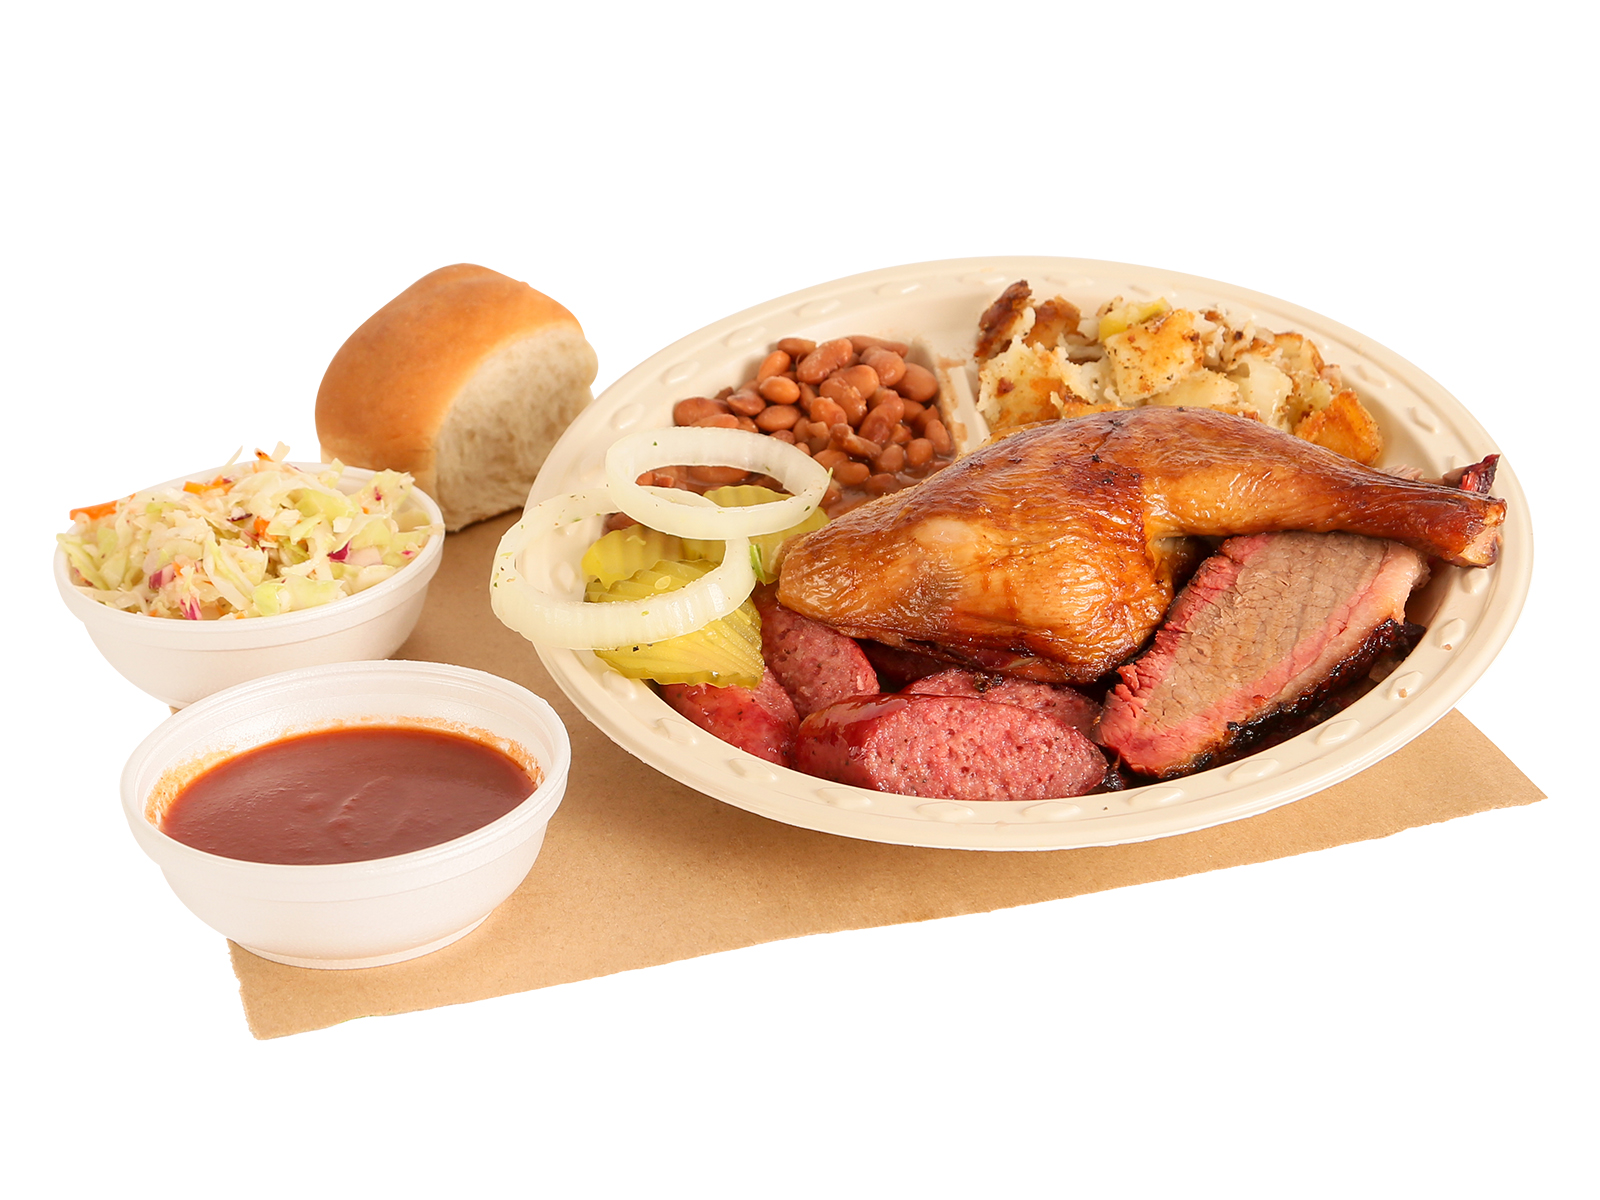 BBQ Rodeo Plate served with brisket, BBQ chicken, sausage, pinto beans, hashbrowns, coleslaw, dinner roll, BBQ sauce, pickles, & onions